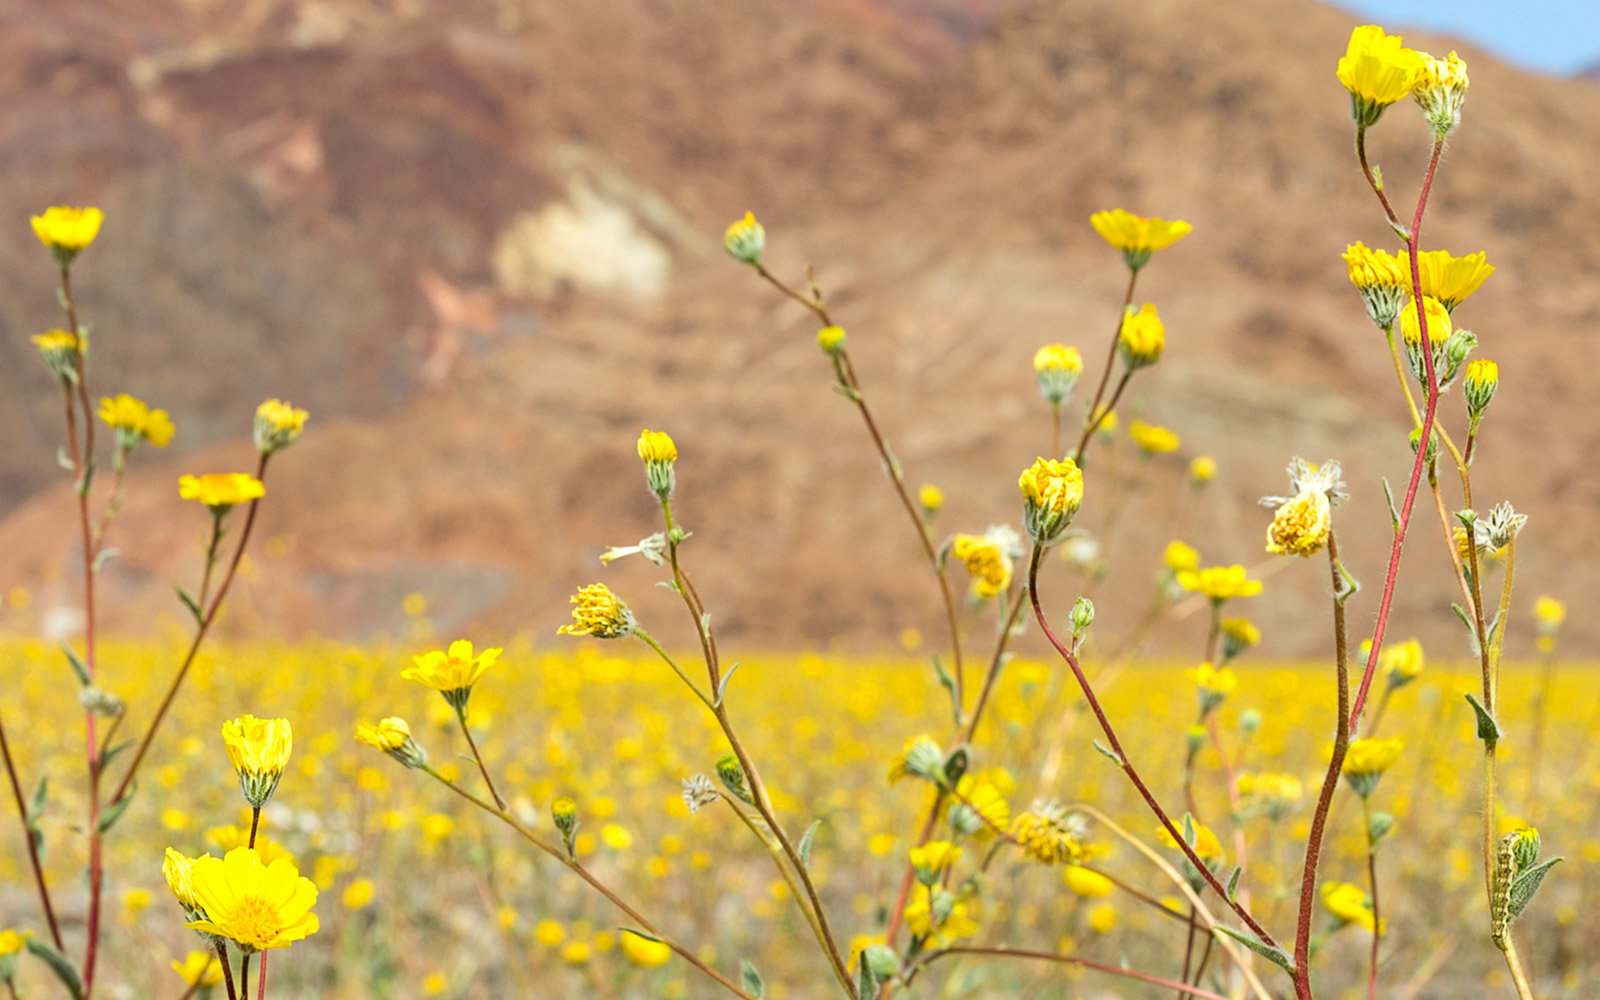 wildflowers-furnace-creek-death-valley-national-park-SUPERBLOOM0208.jpg